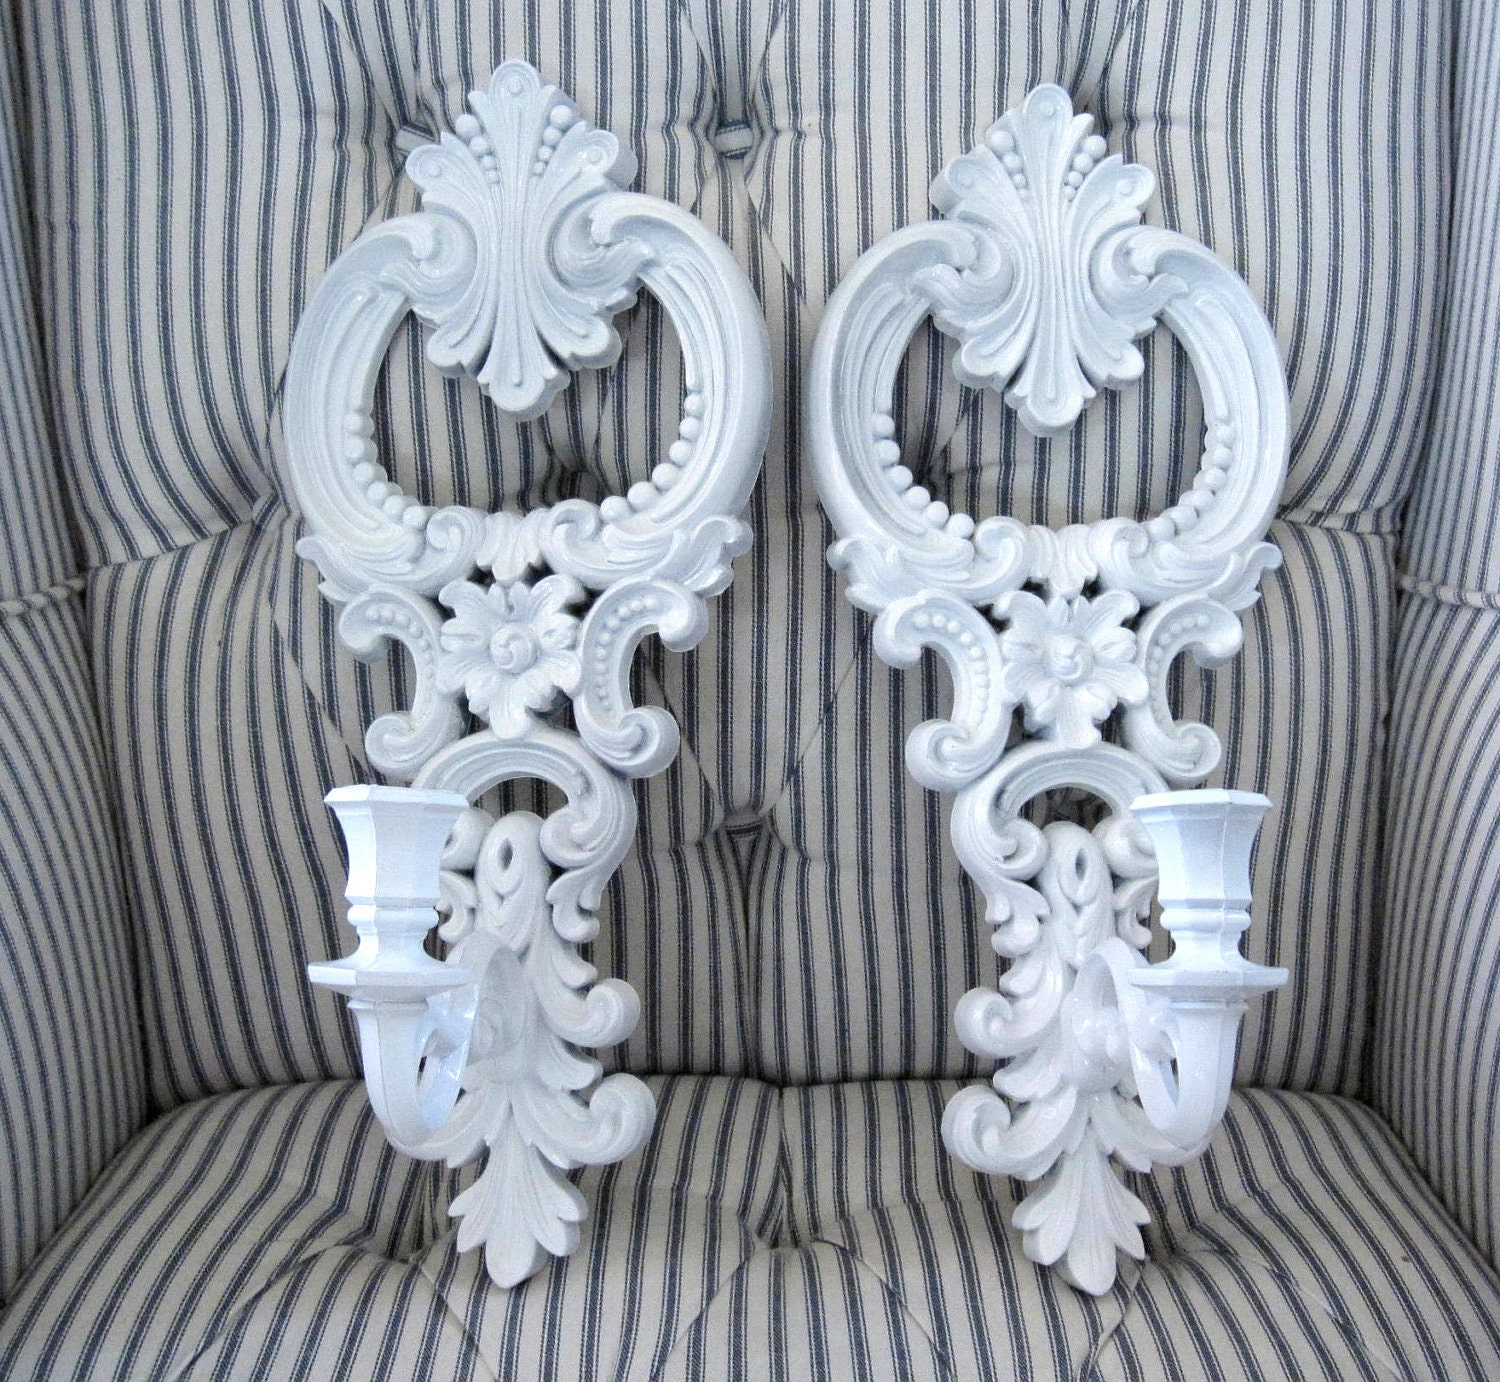 Pr Vintage Ornate White Wall Sconces Candle Holders Shabby